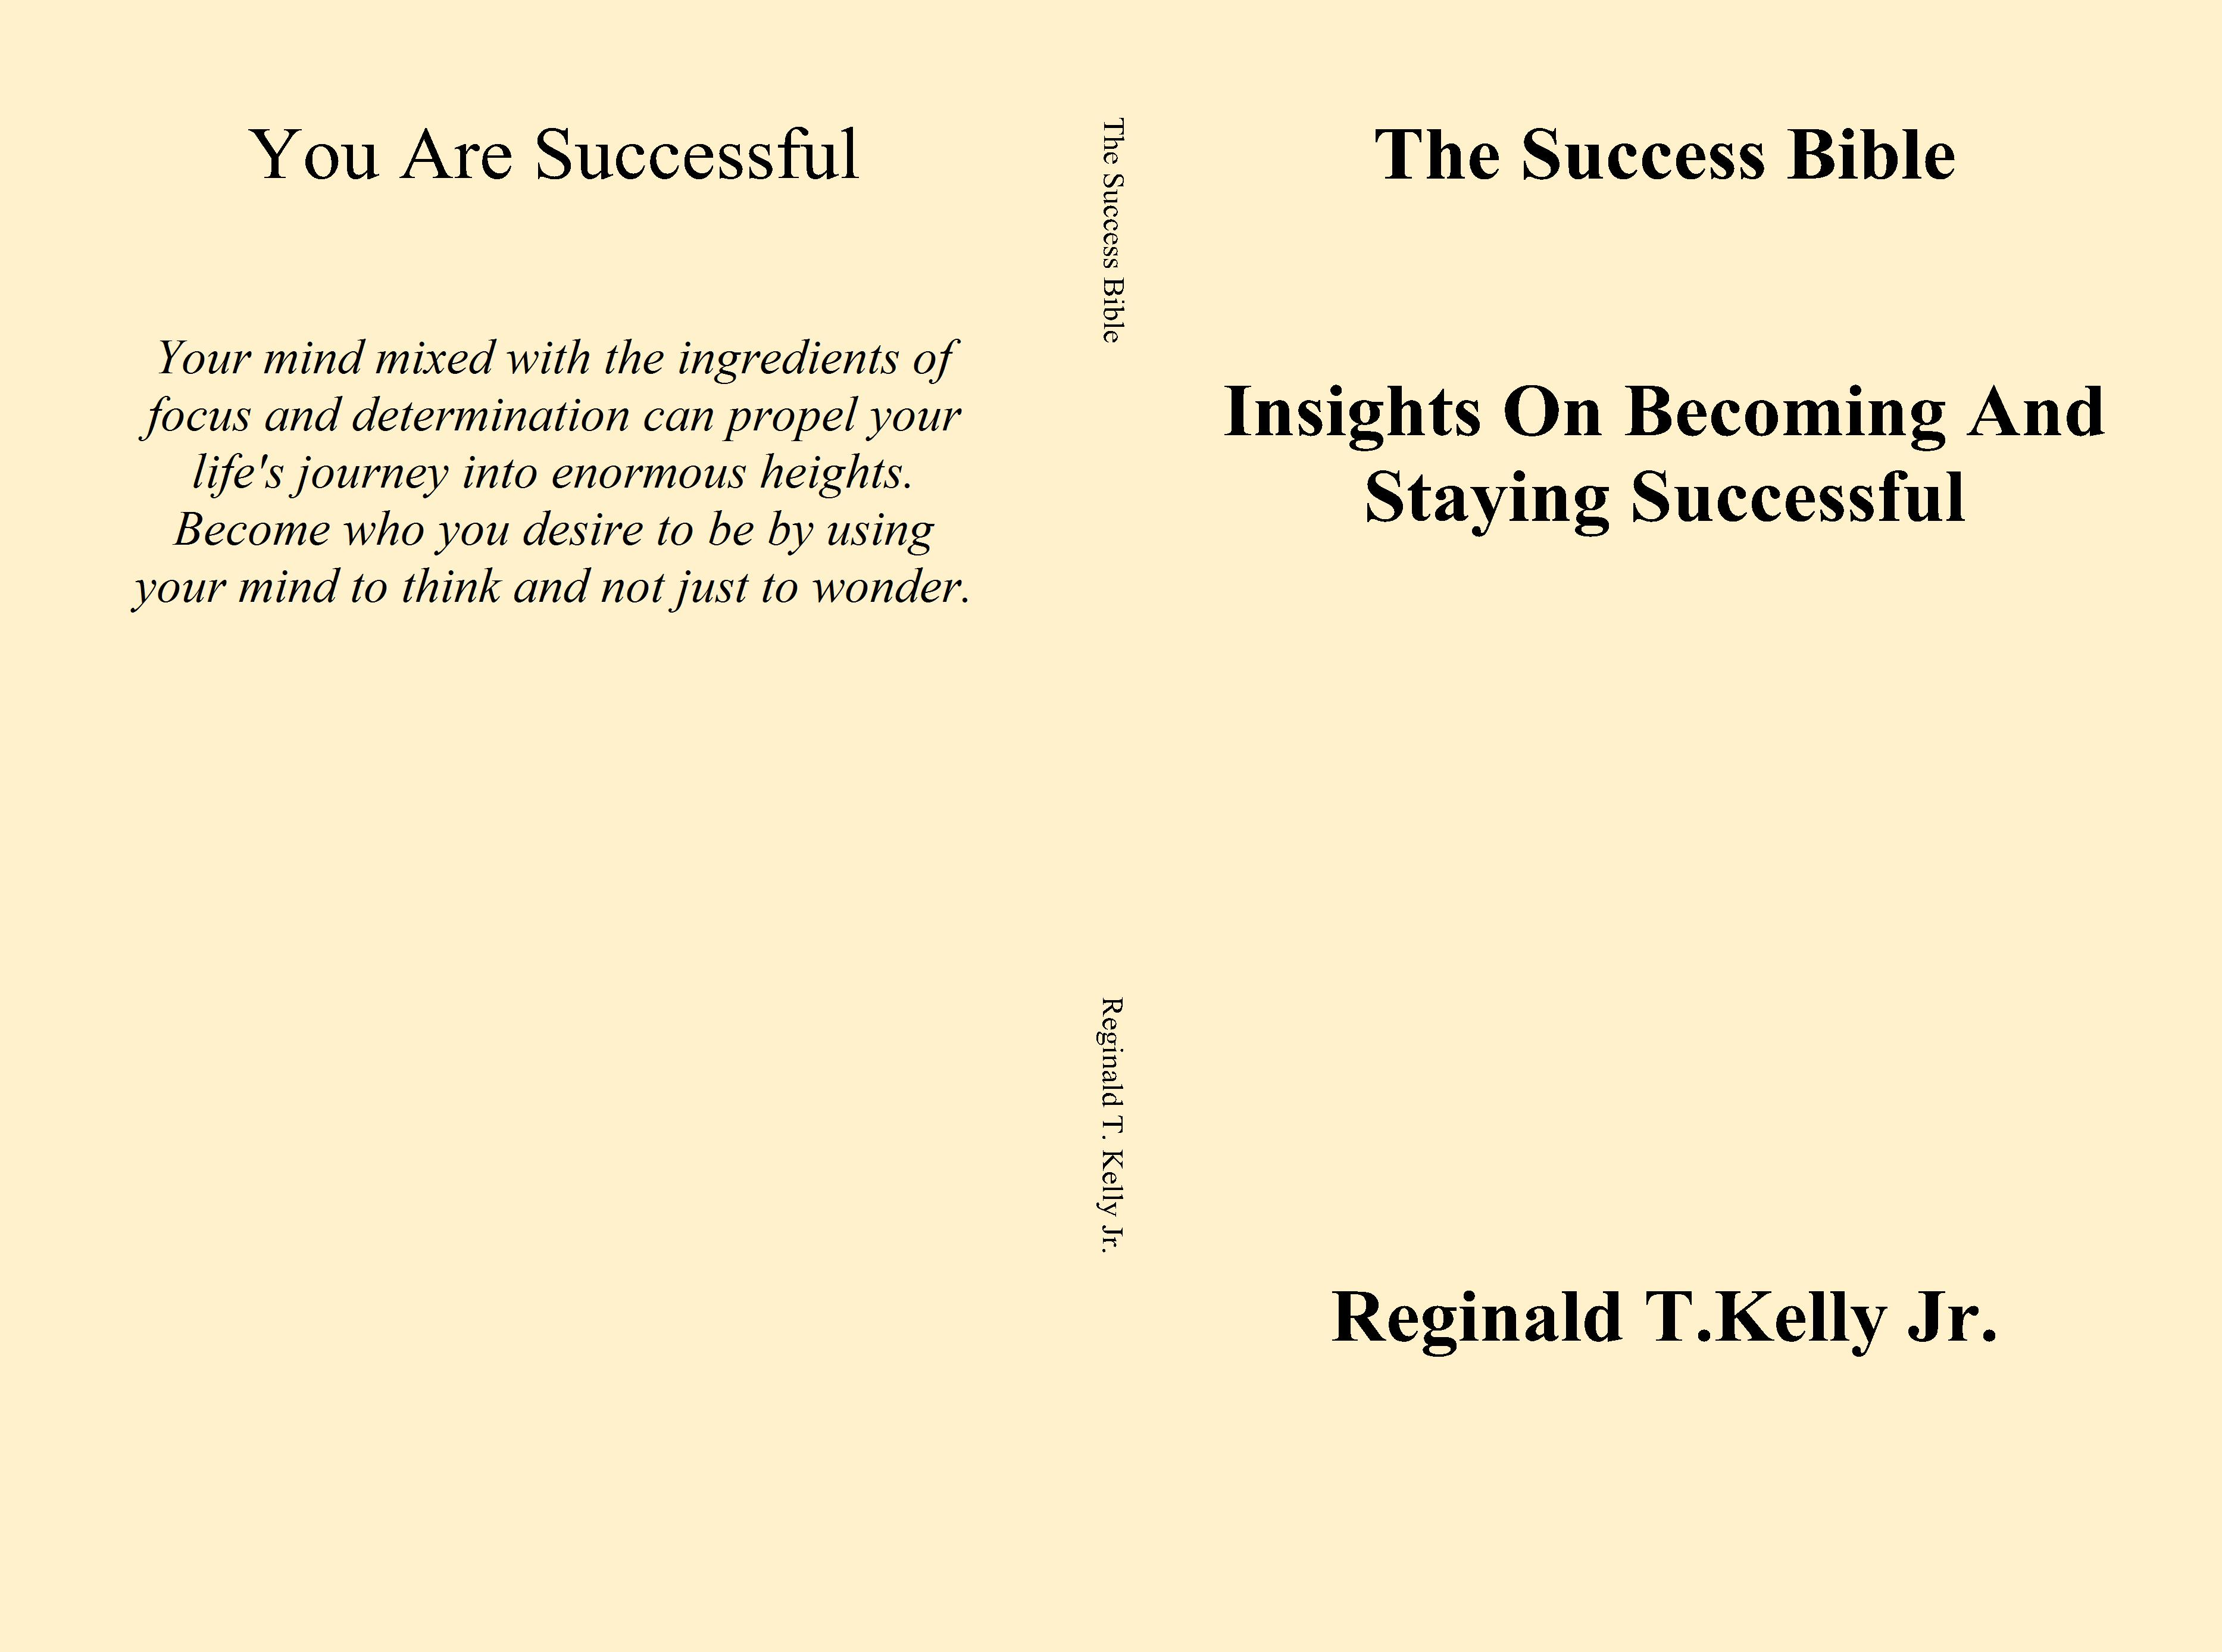 The Success Bible Insights On Becoming And Staying Successful cover image